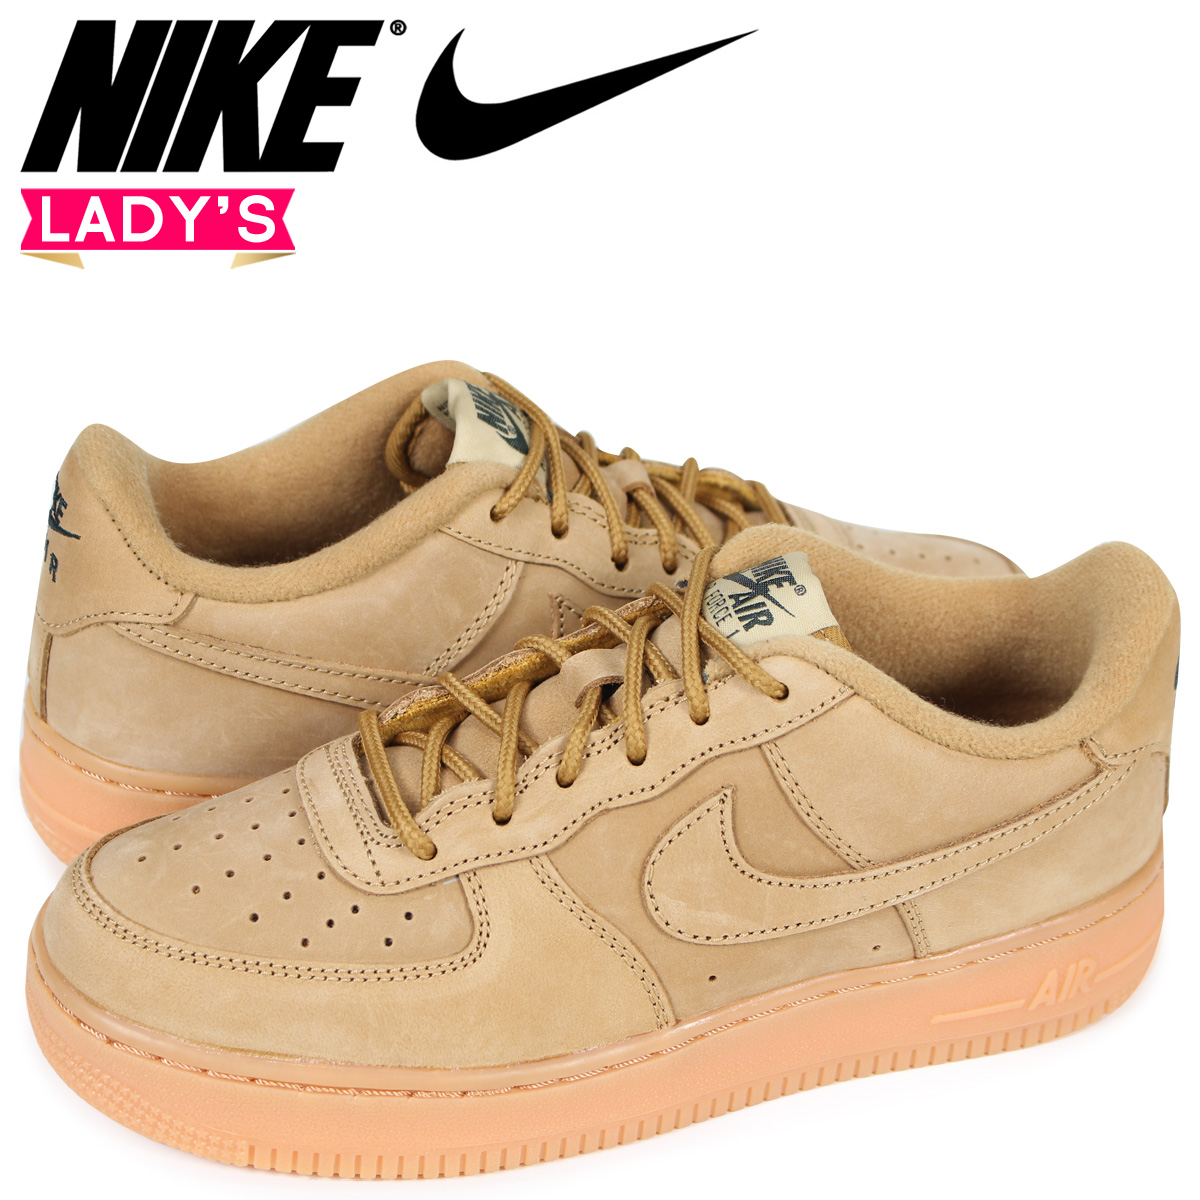 NIKE AIR FORCE 1 LOW WINTER PREMIUM GS WHEAT Nike air force 1 lady's sneakers 943,312 200 beige [228 Shinnyu load] [182]